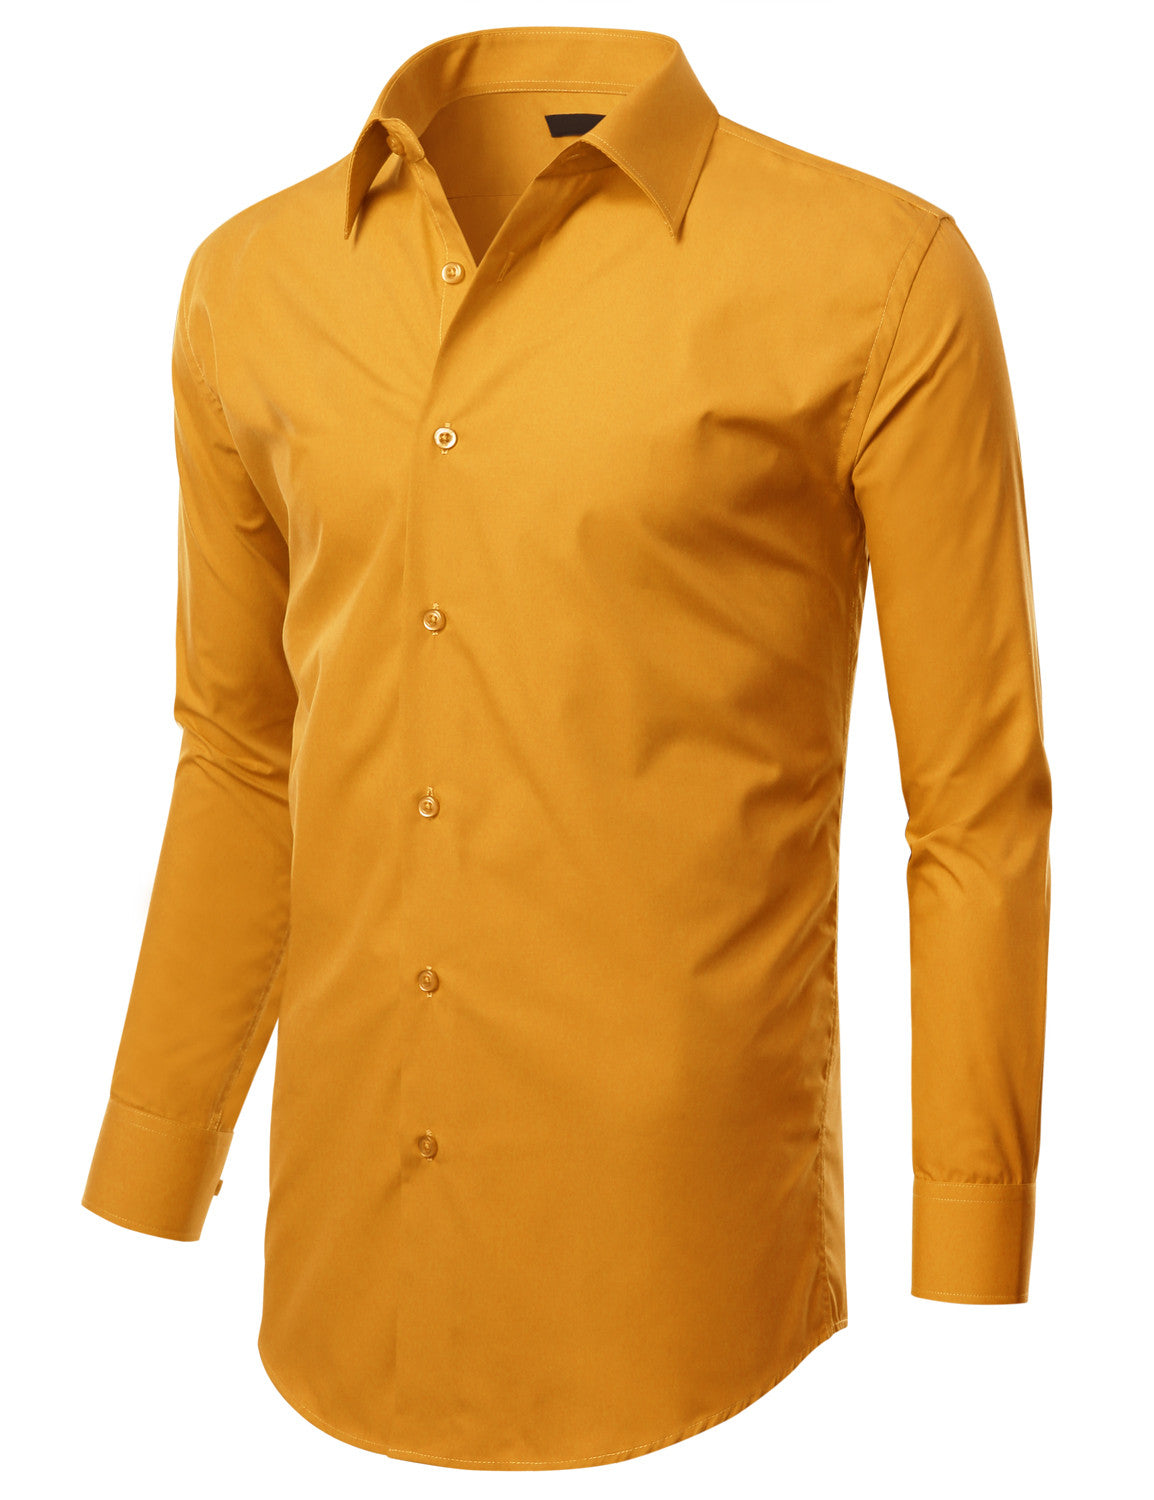 TC637MUSTARD Mustard Slim Fit Dress Shirt w/ Reversible Cuff (Big & Tall Available)- MONDAYSUIT